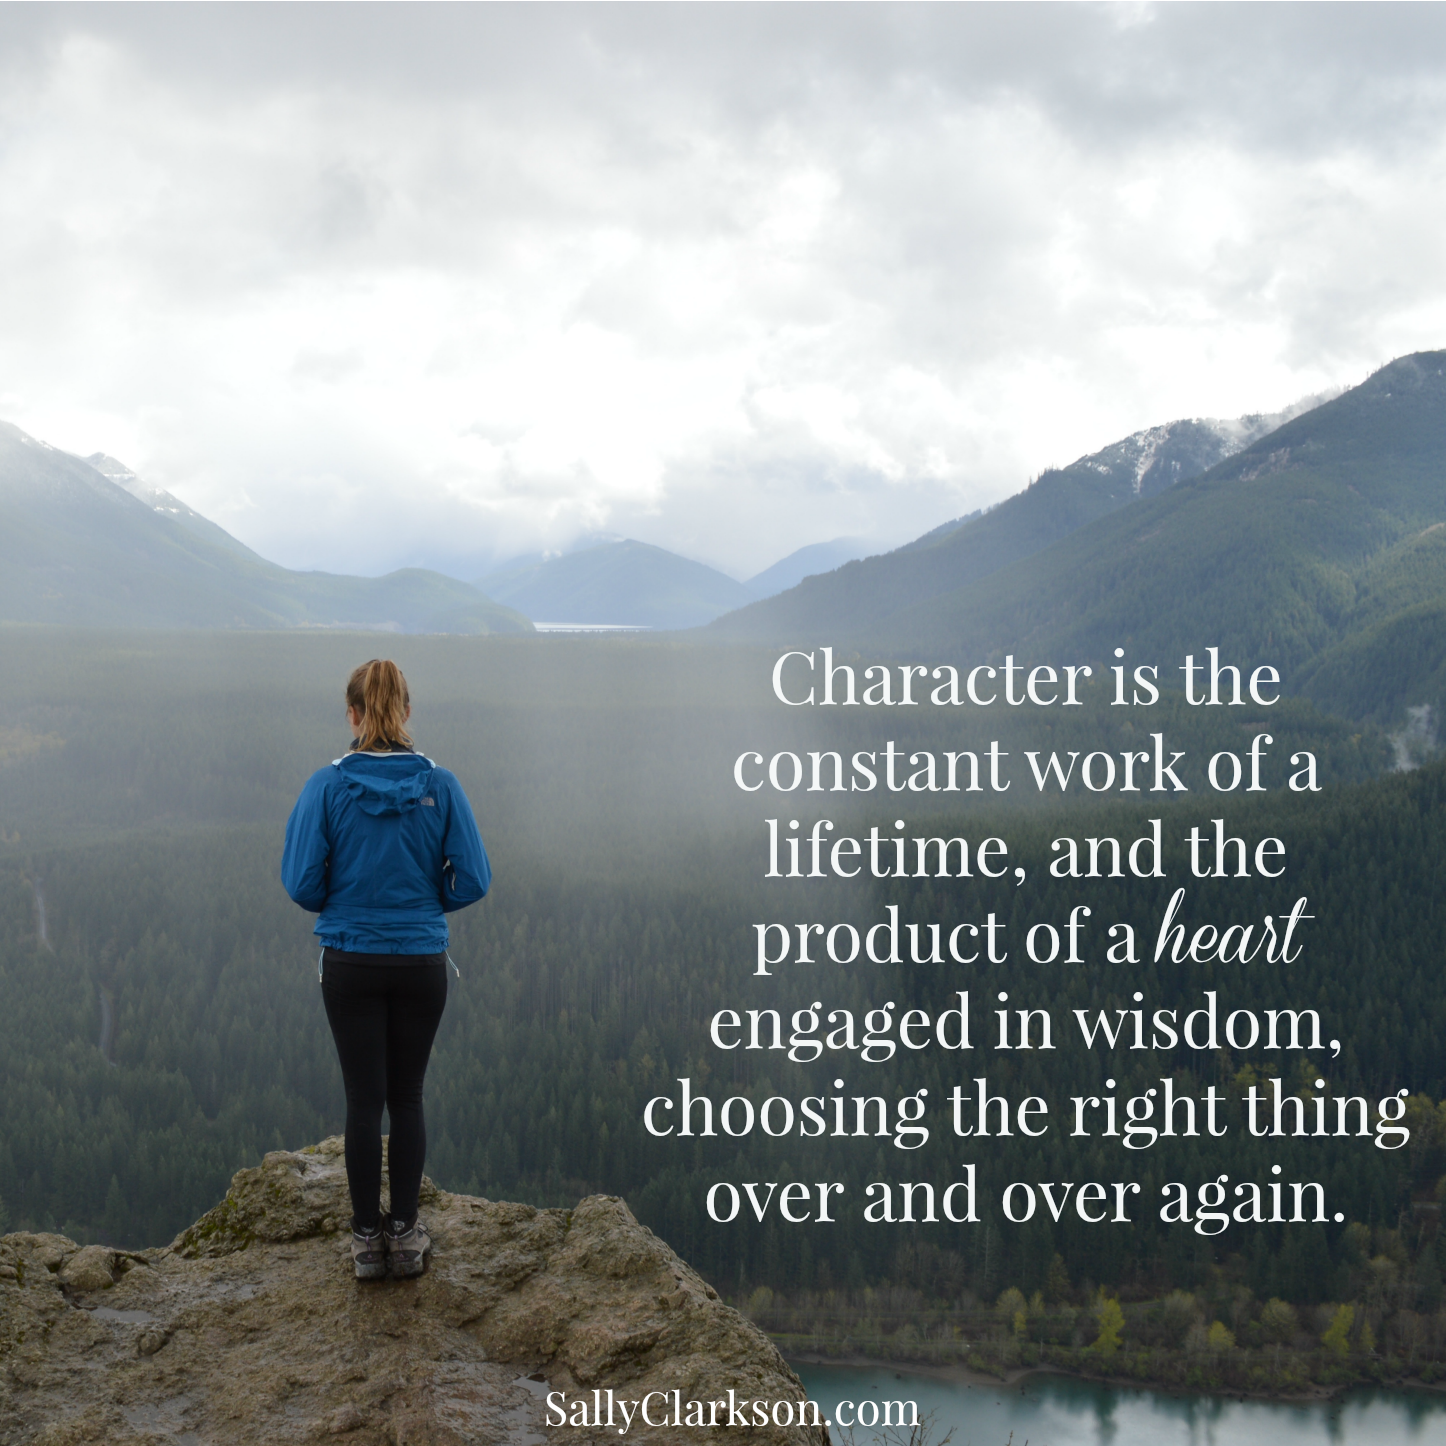 Character is Constant Work